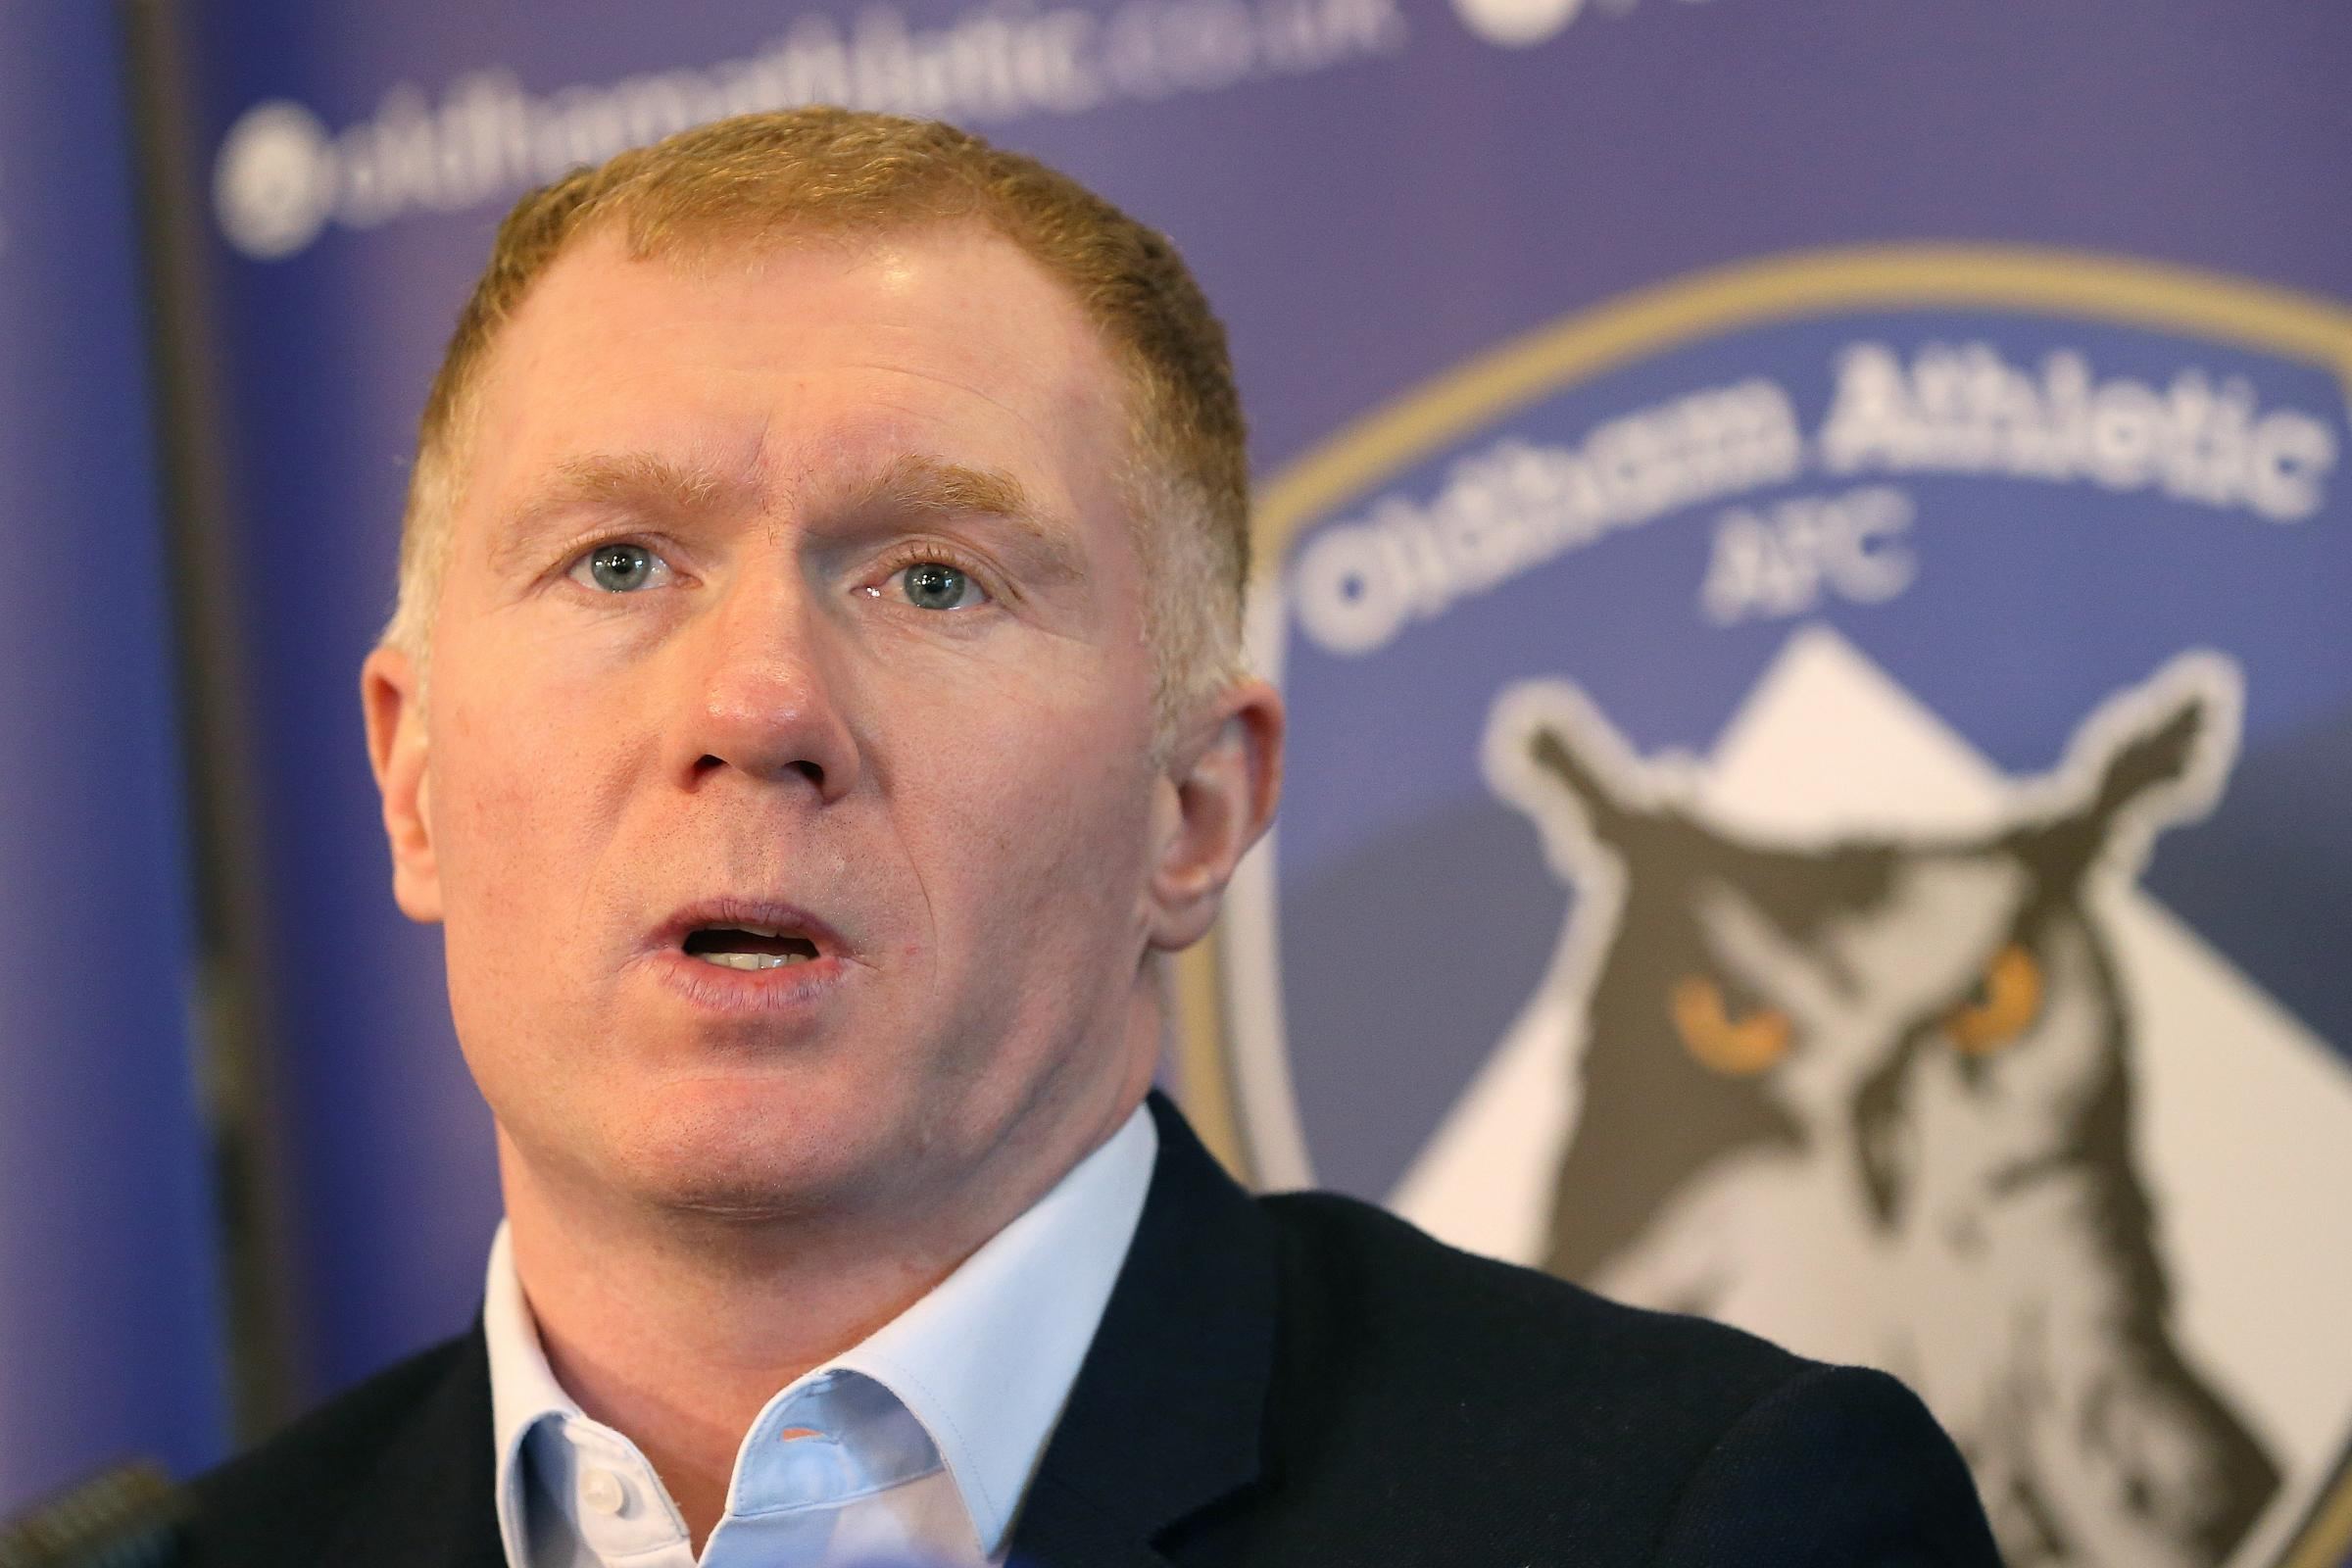 Former Manchester United midfielder Paul Scholes has taken his first job in management at League Two Oldham